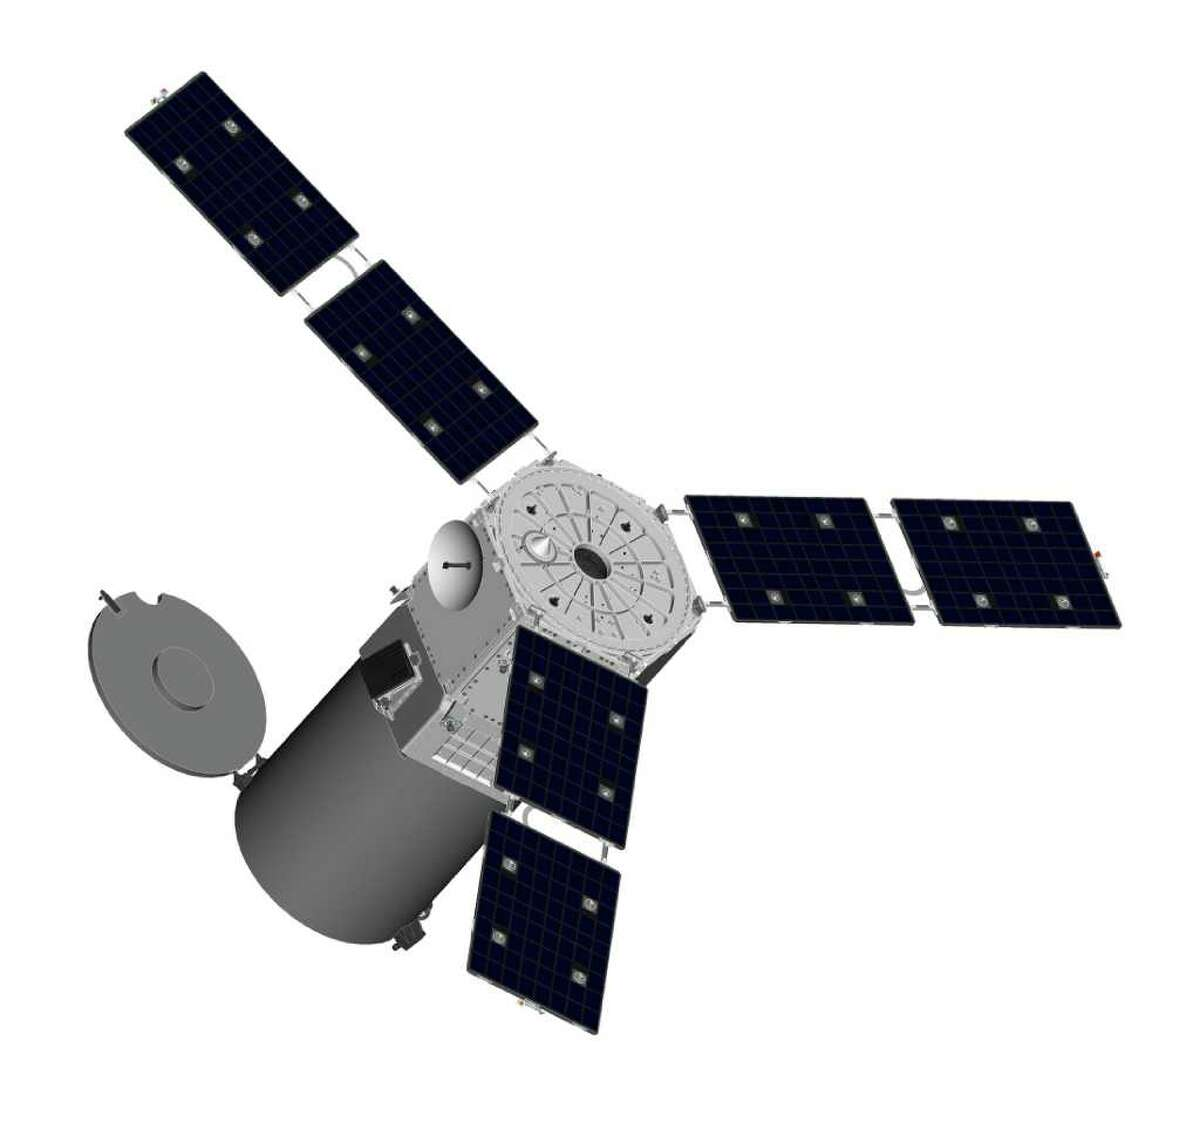 Goodyear ISR in Danbury, a specialist in space optics, is building its first complete satellit to record color images of enemy military operations from low-earth orbit.